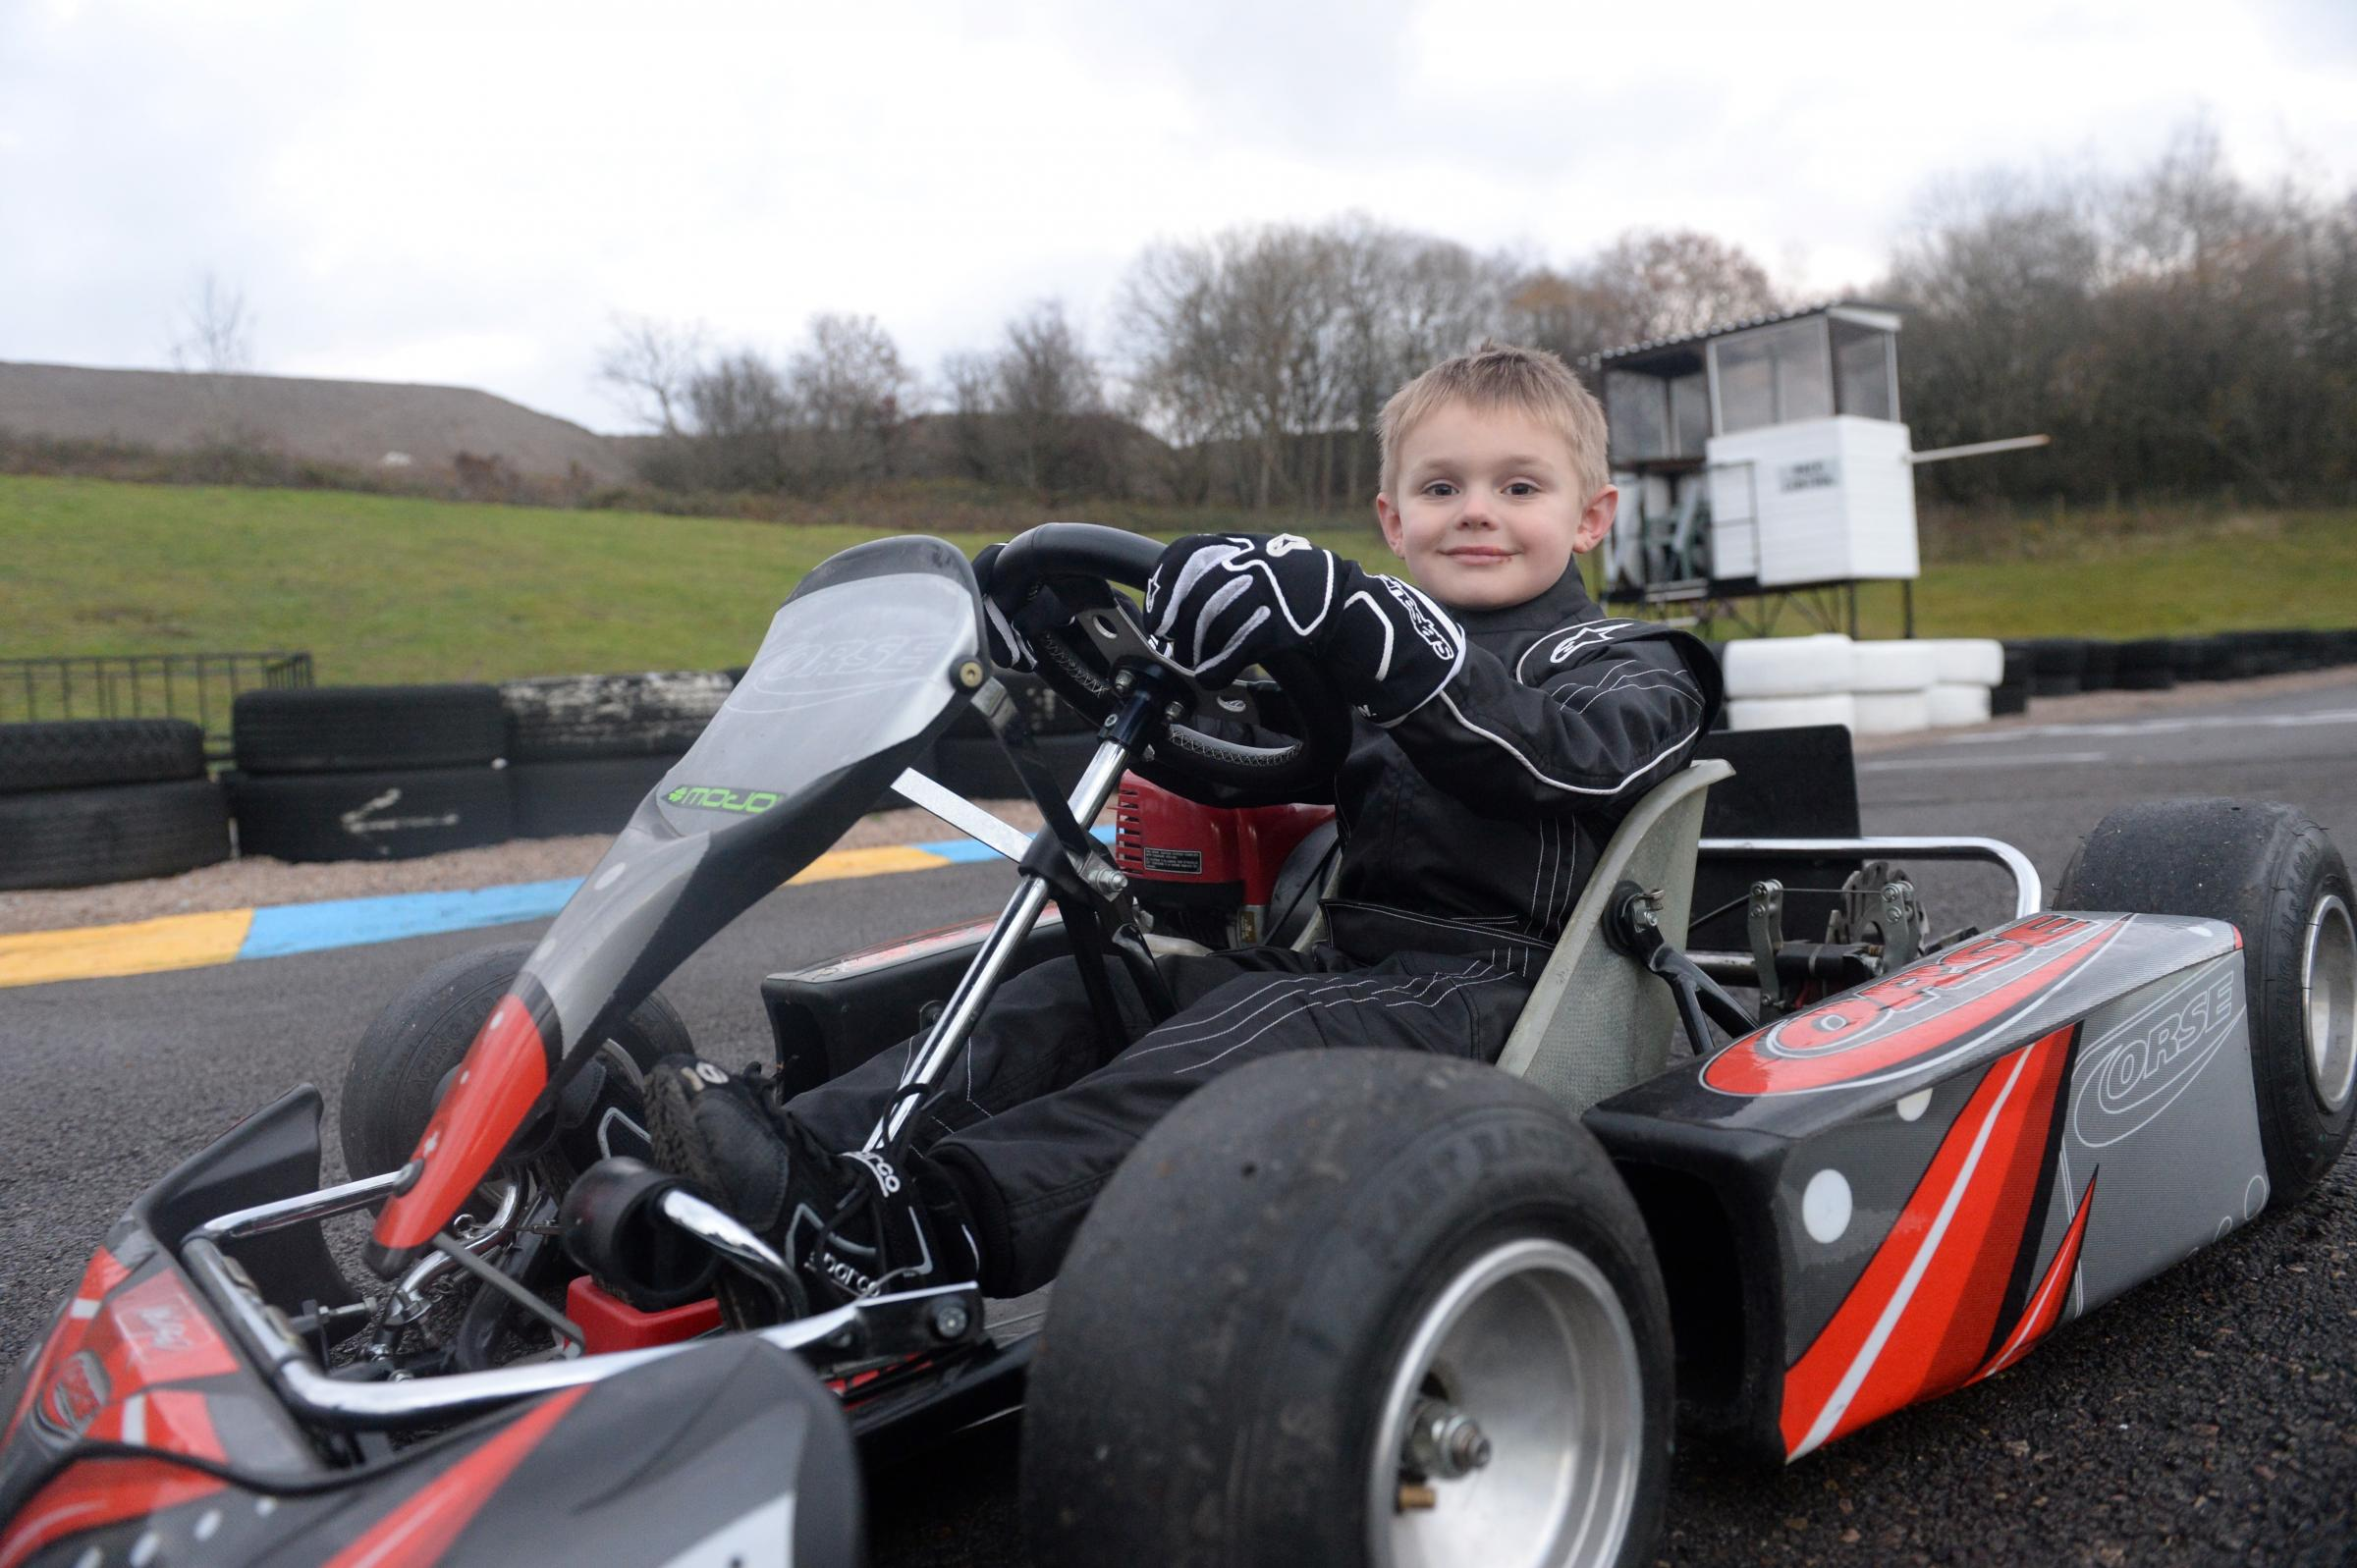 Caleb McDuff is hoping to become Formula One's first deaf racing driver. Caleb in his Go-kart at G-Force Karting in Pontypool. (2916585)